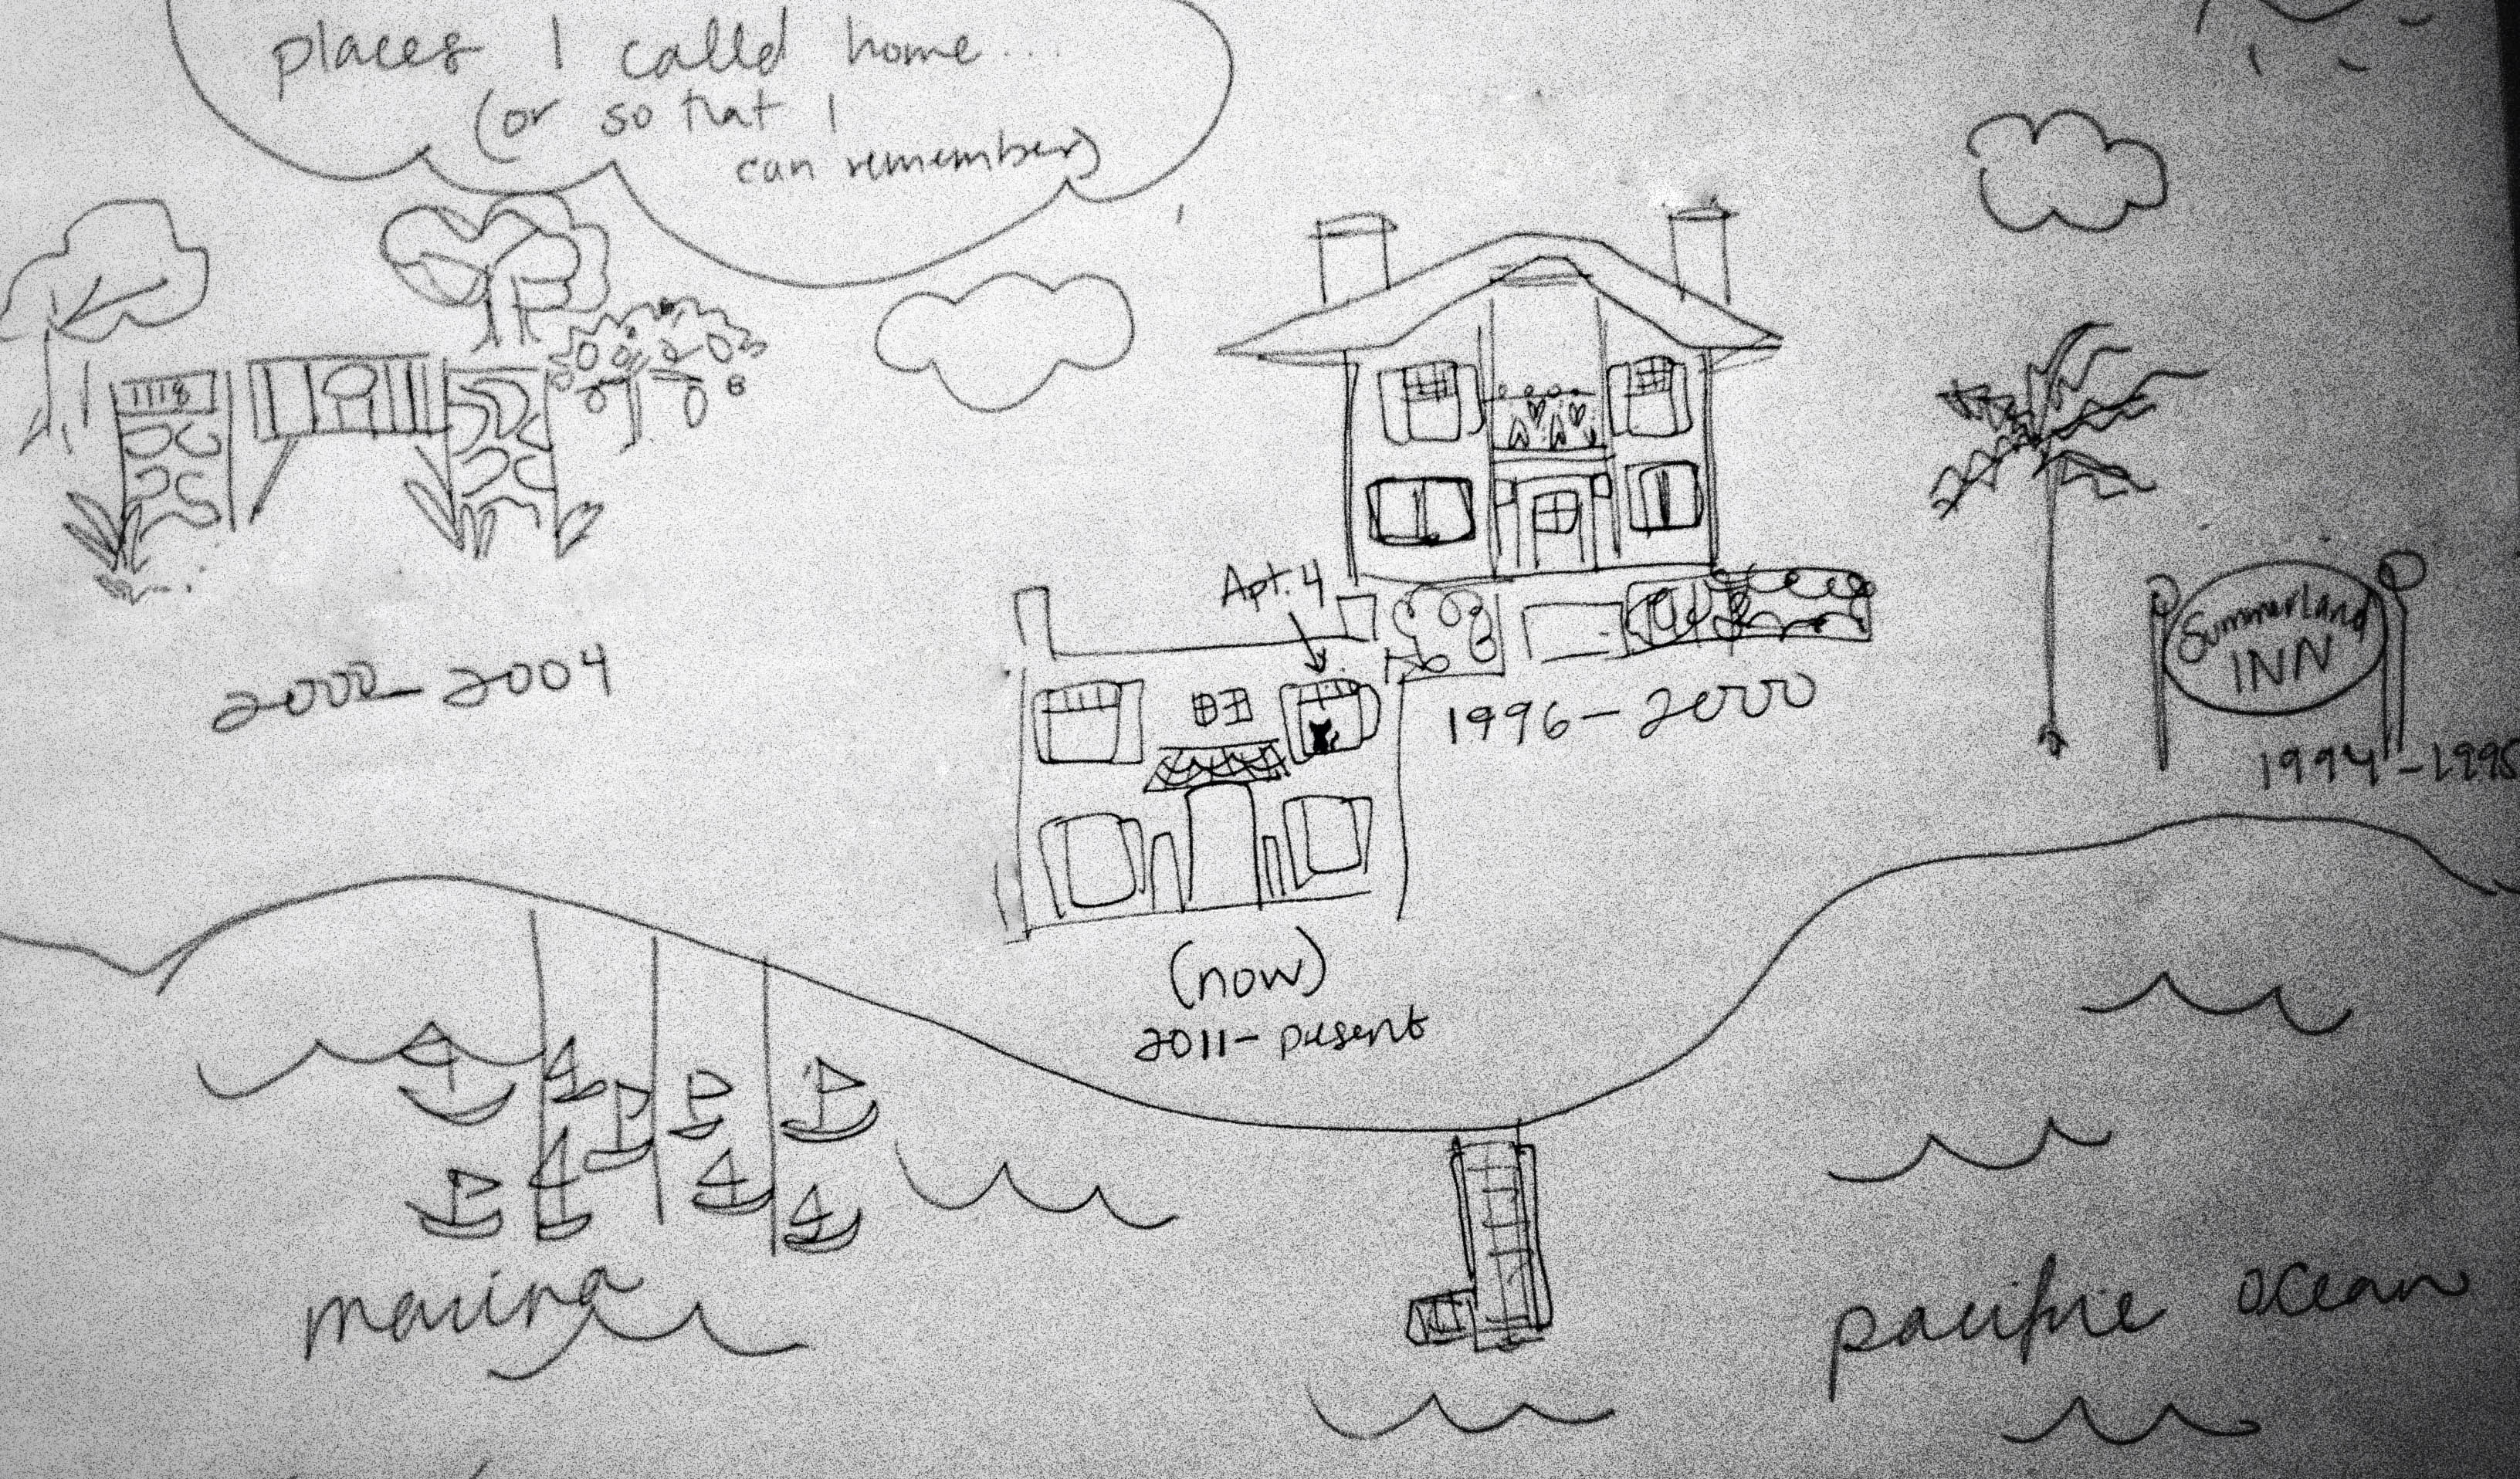 Maps  - image 2 - student project